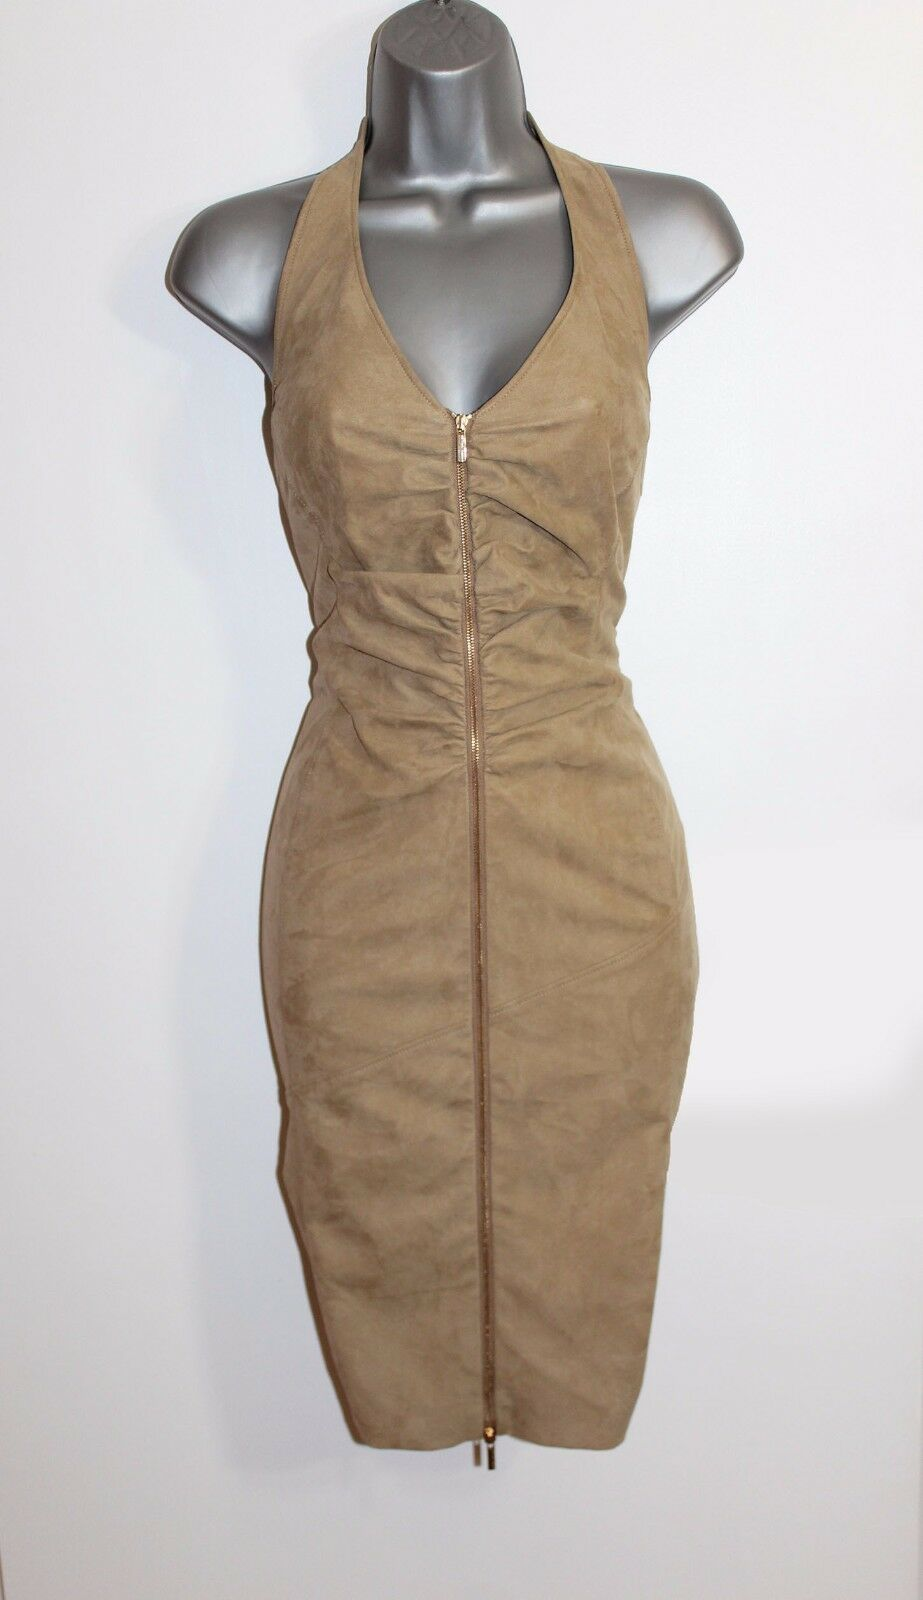 Karen Millen Nude Faux Suede Halterneck Pencil Casual Formal Formal Formal Dress UK12 EUE40 f73cda